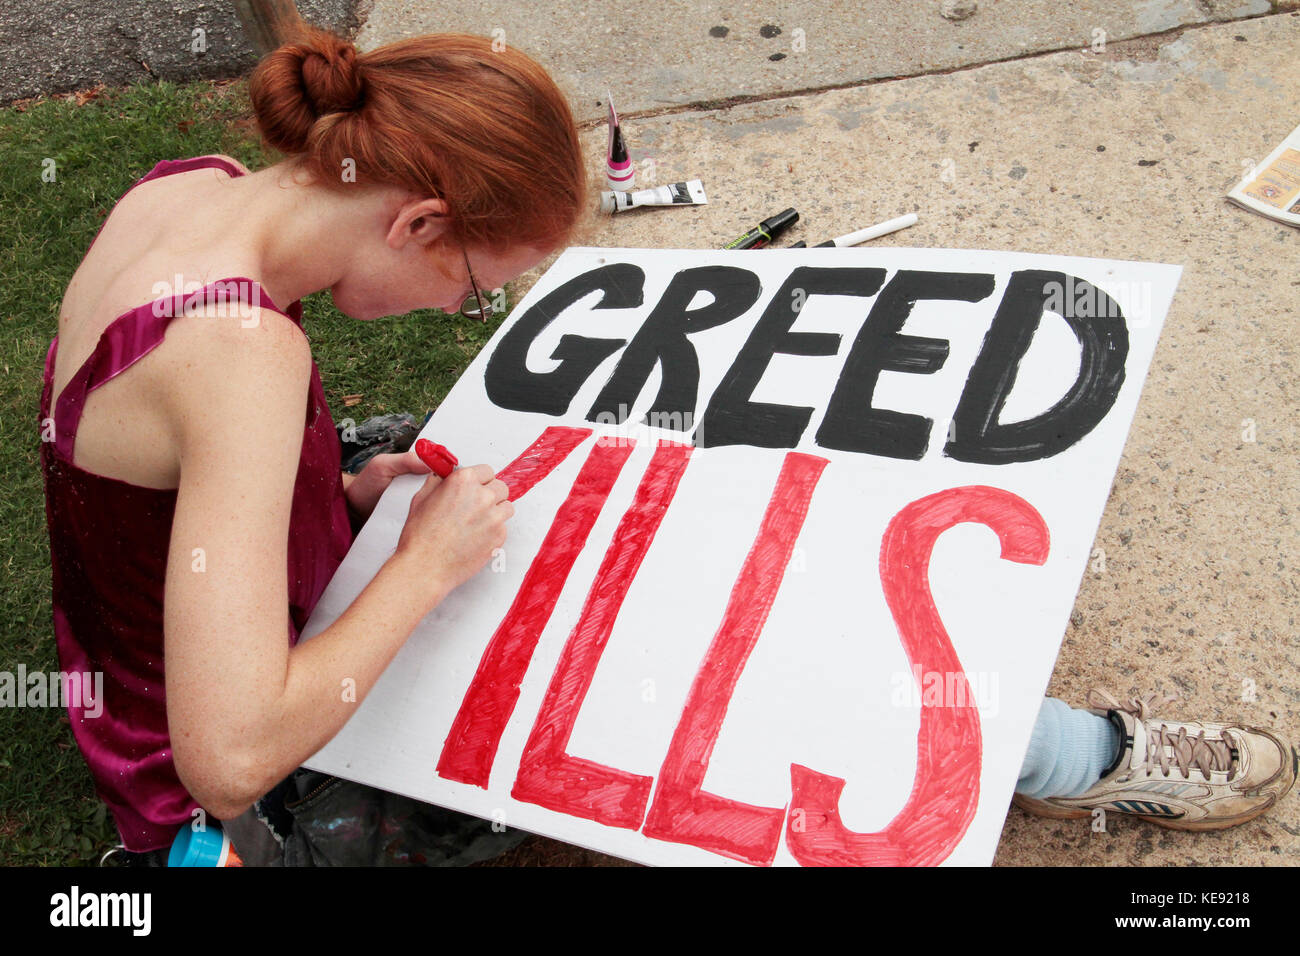 Greed Kills sign, BP protest - Stock Image